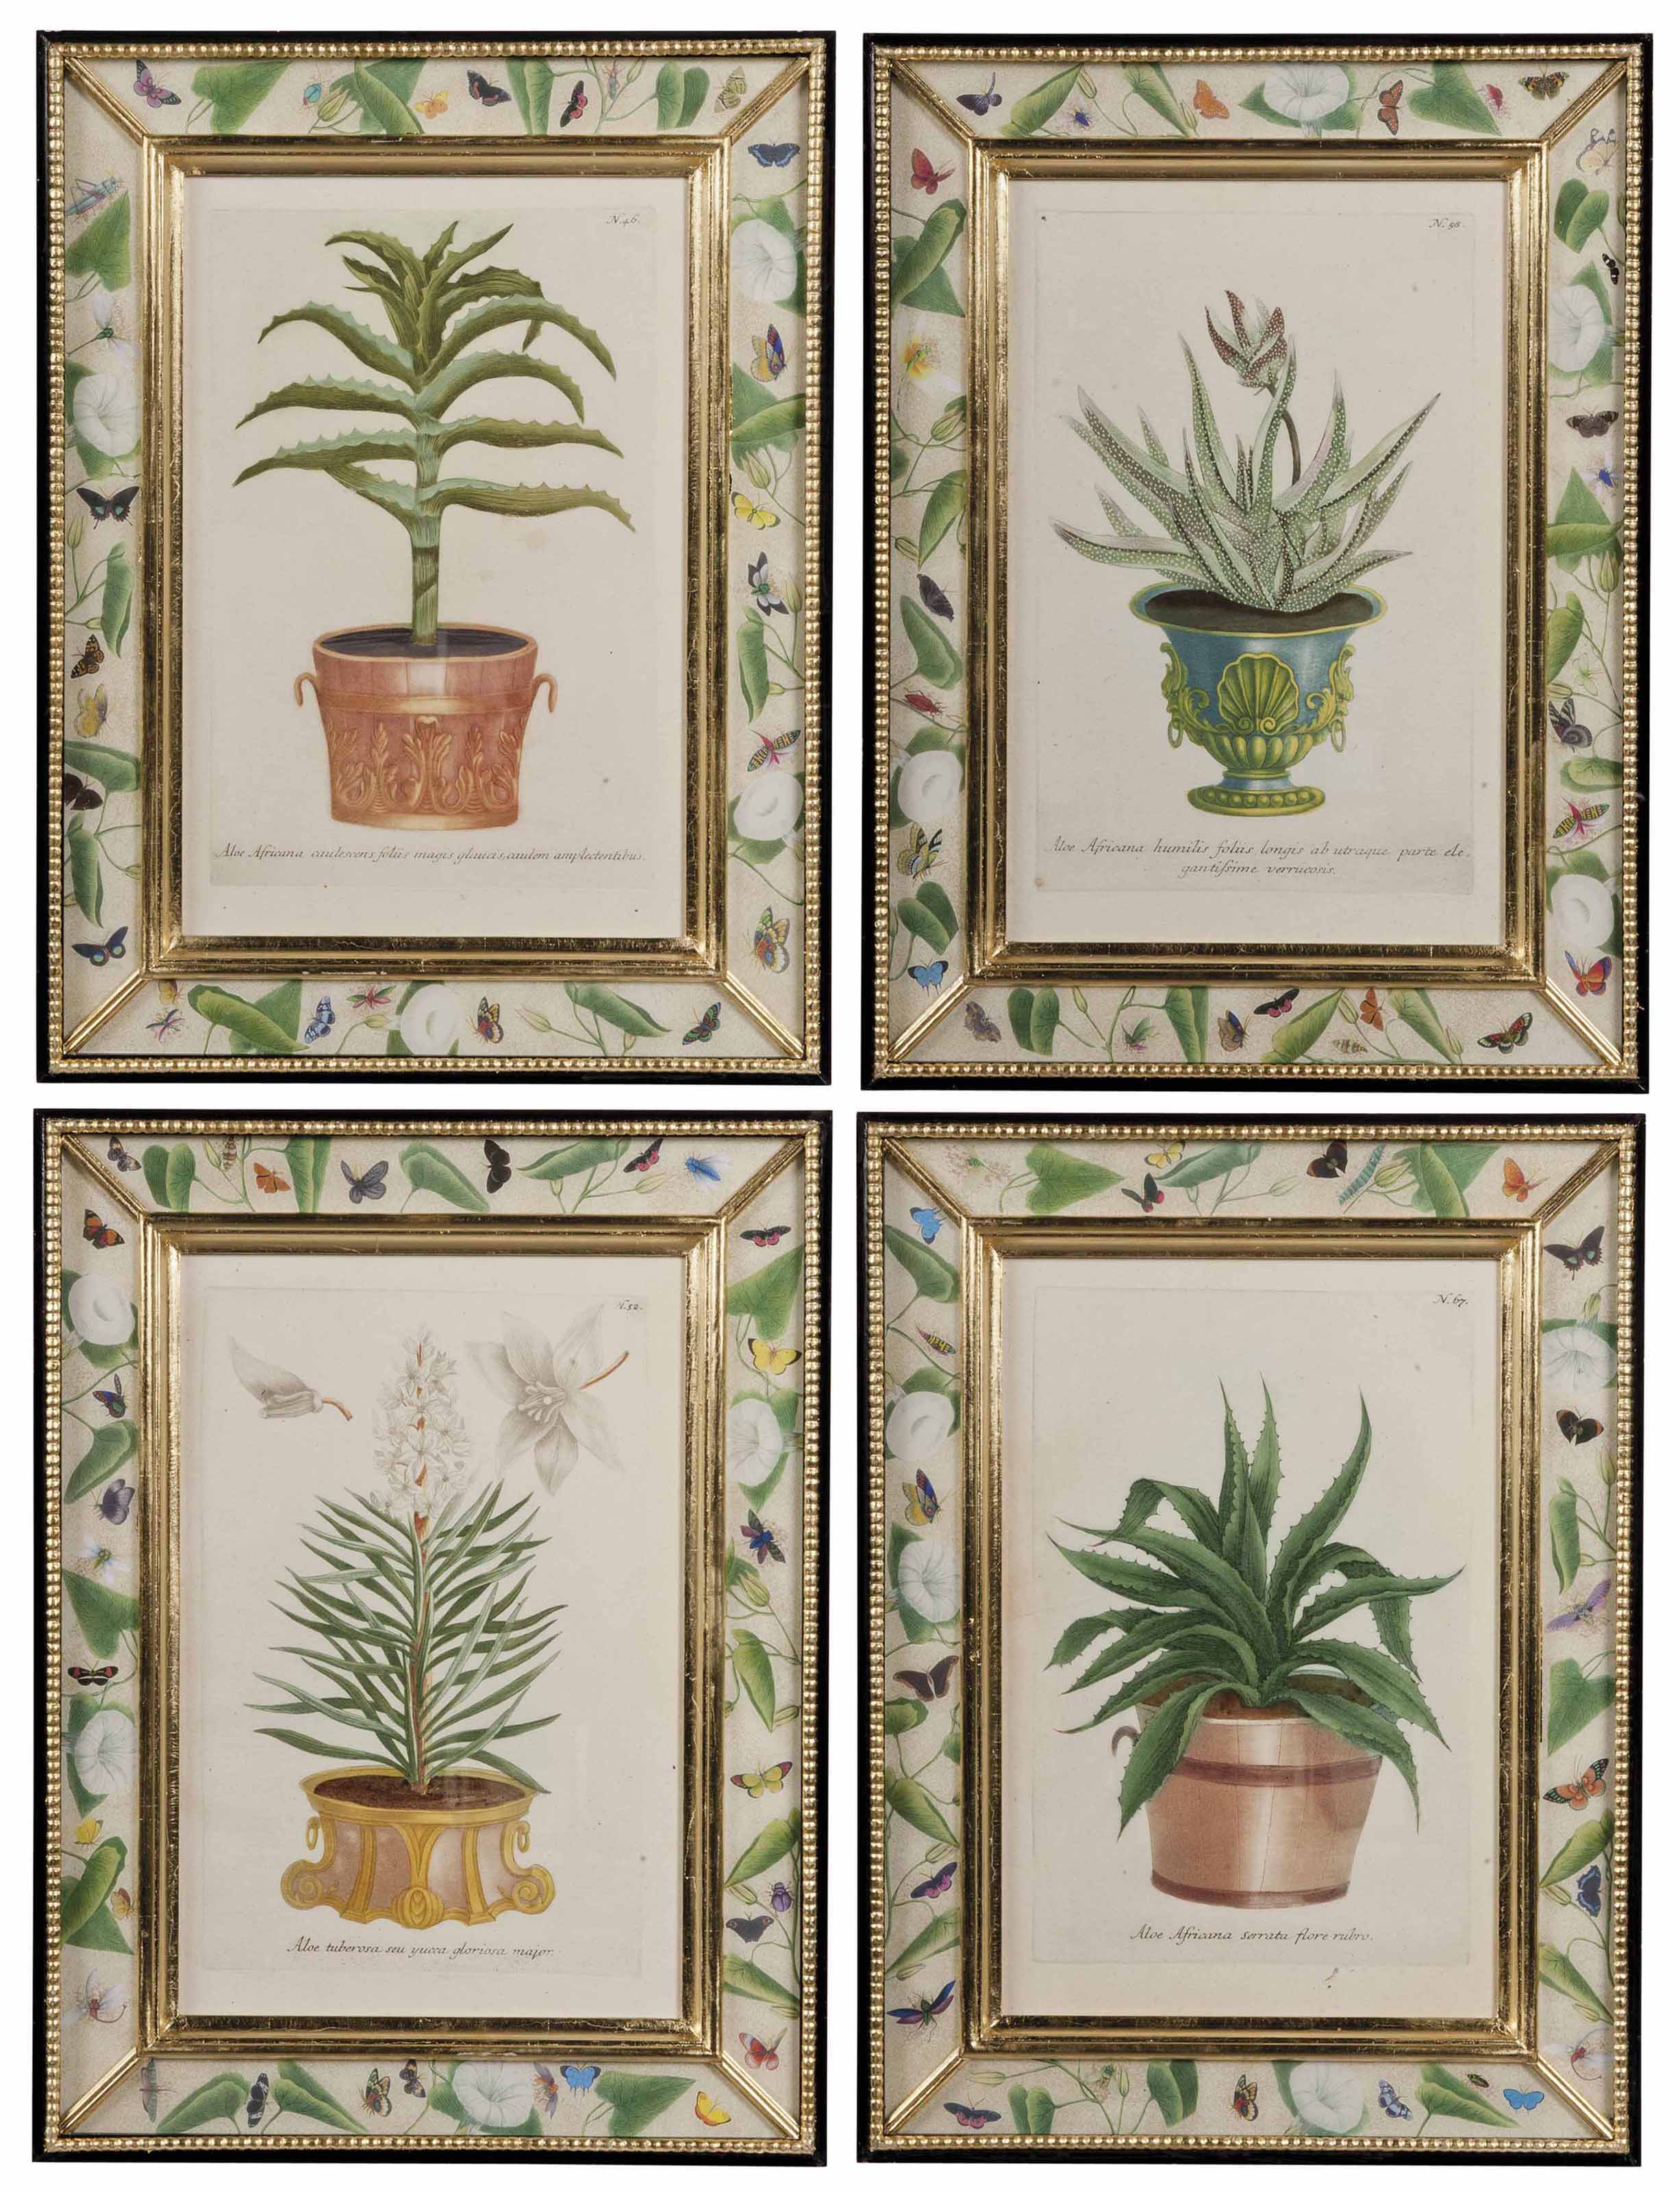 A SET OF TWEVLE HAND-COLOURED MEZZOTINTS OF BOTANICAL STUDIES OF ALOE AND AGAVE